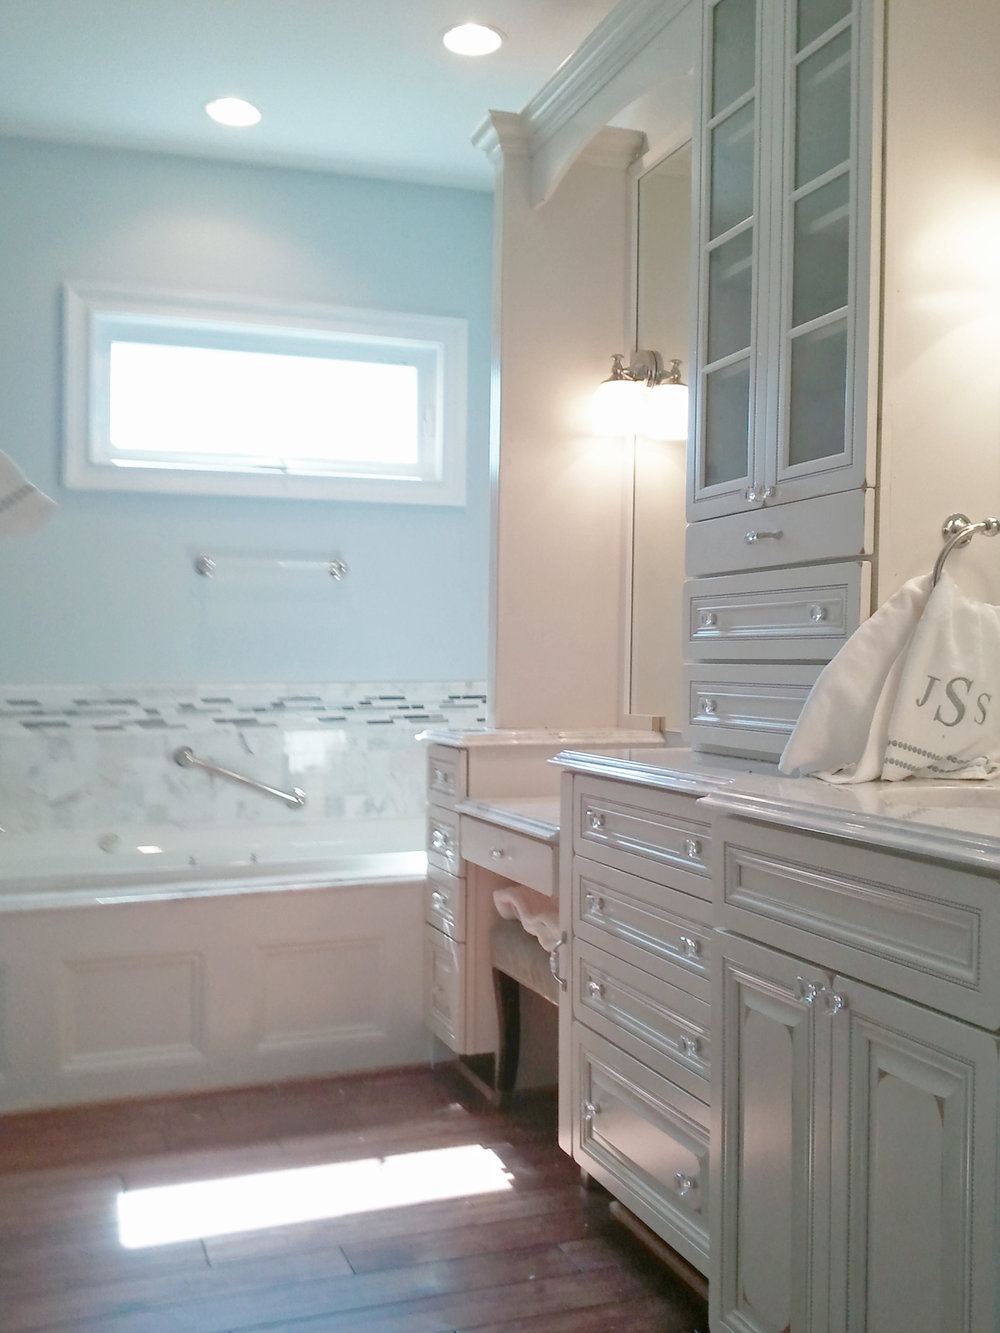 Bathroom Vanity & Bathtub